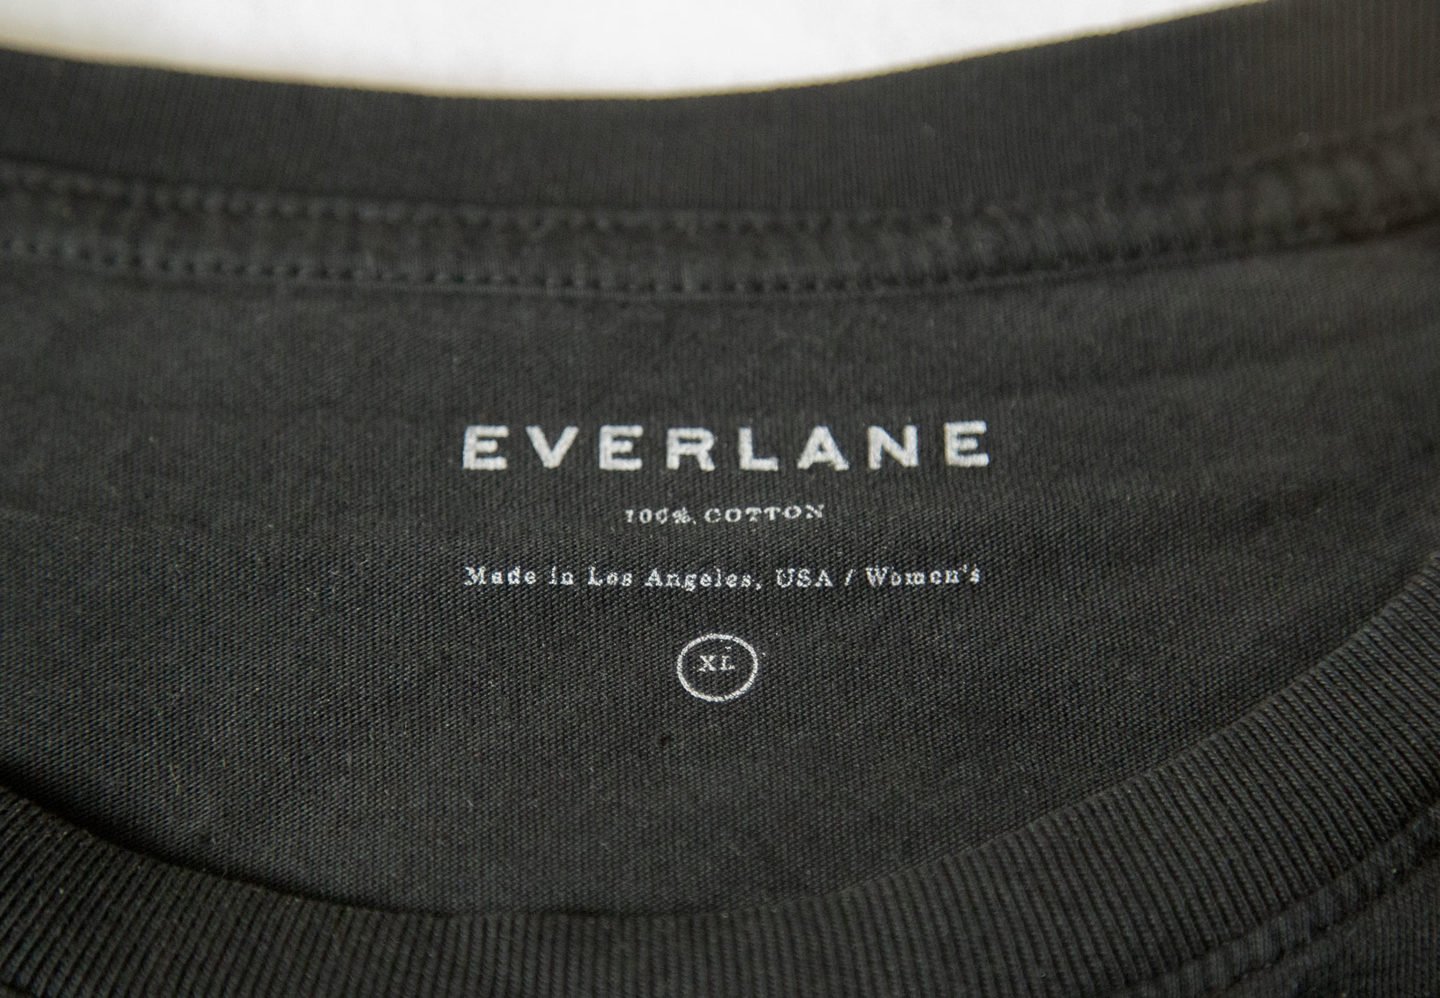 screenprinted everlane logo on black t shirt